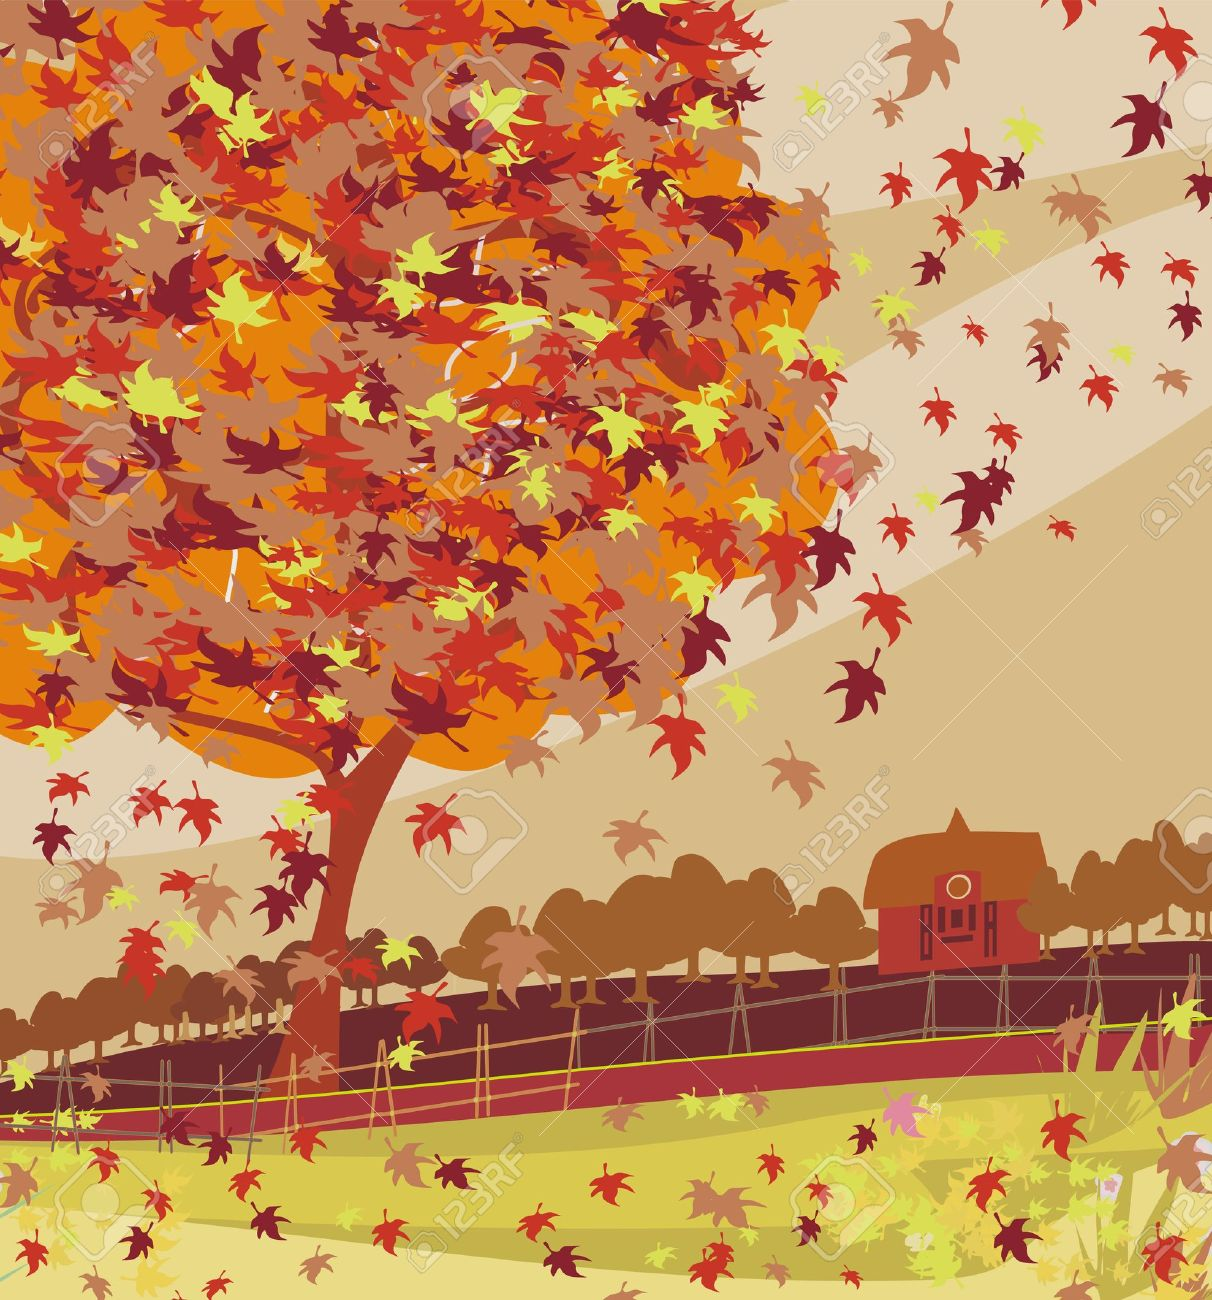 Related Keywords & Suggestions for Autumn Landscape Clipart.